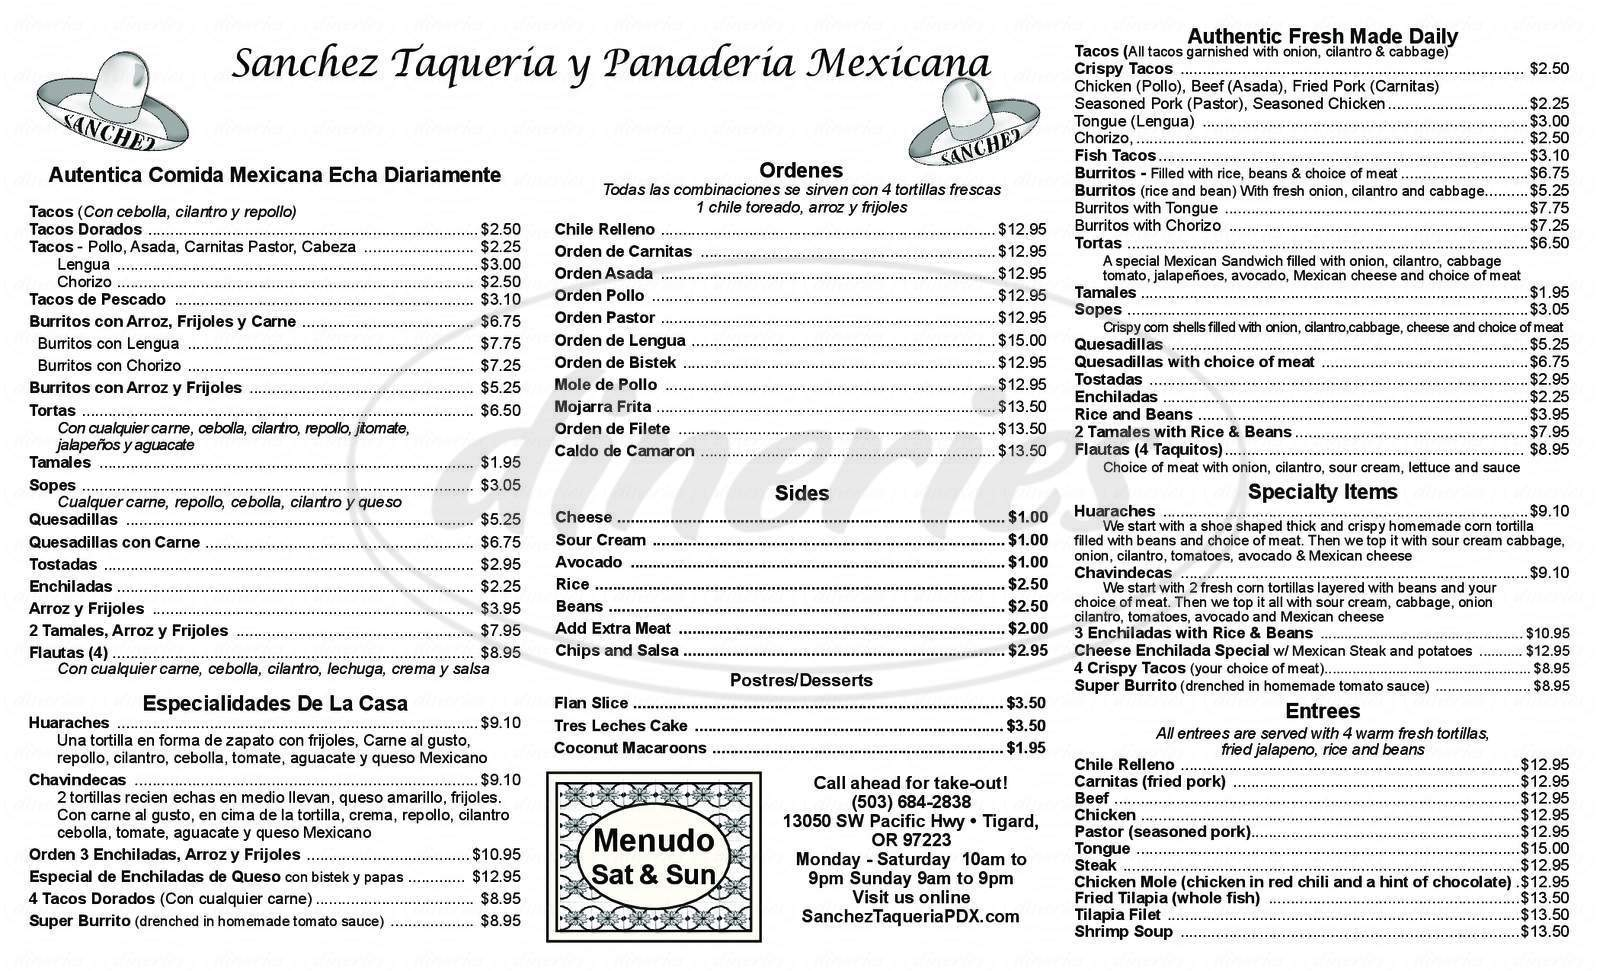 menu for Sanchez Taquería